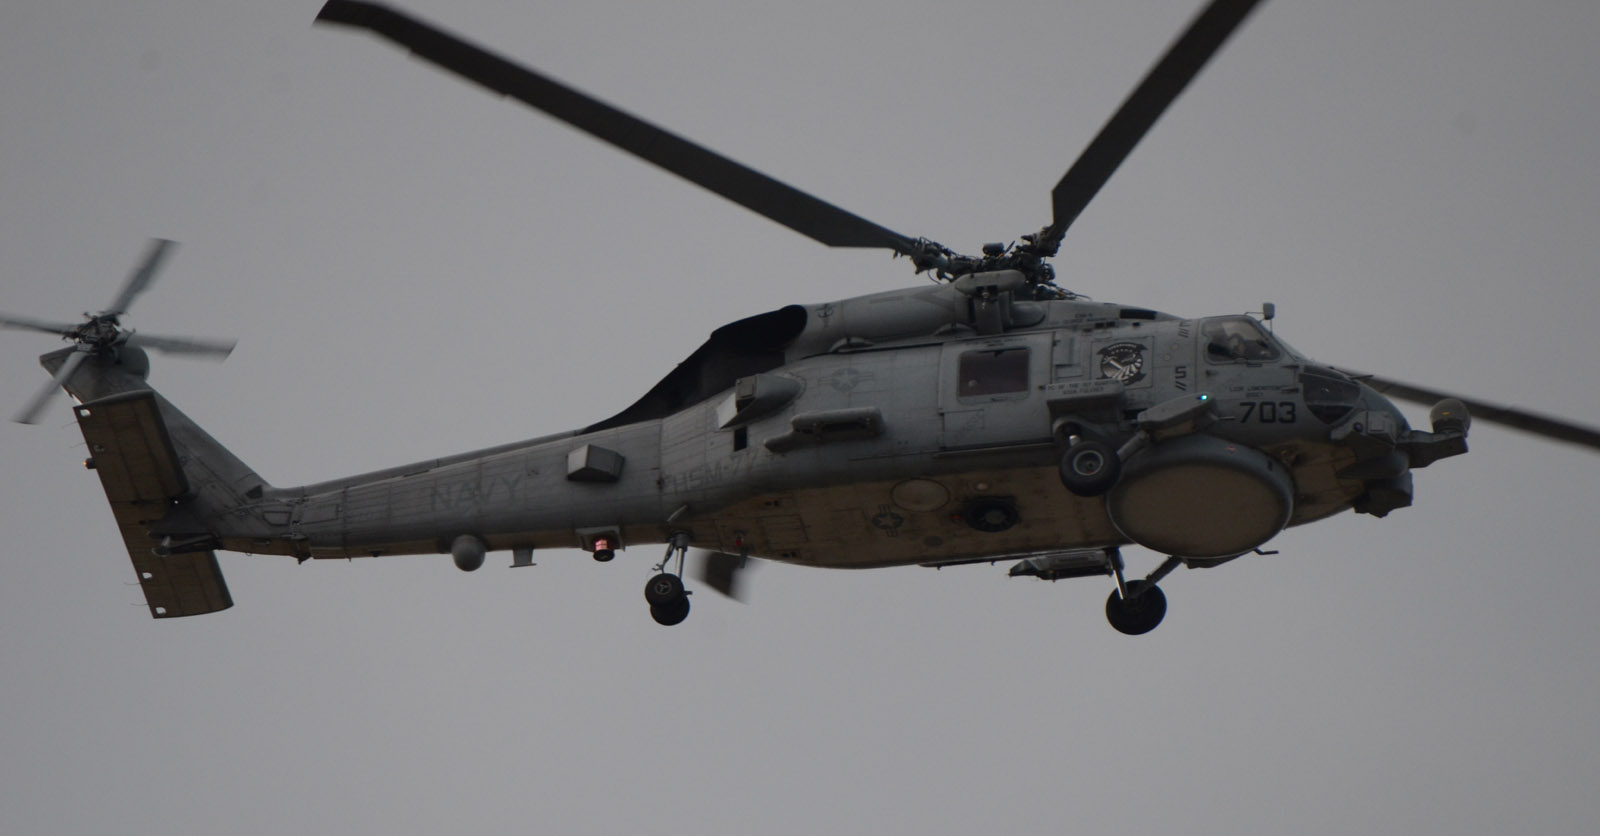 Mh60r140321g192